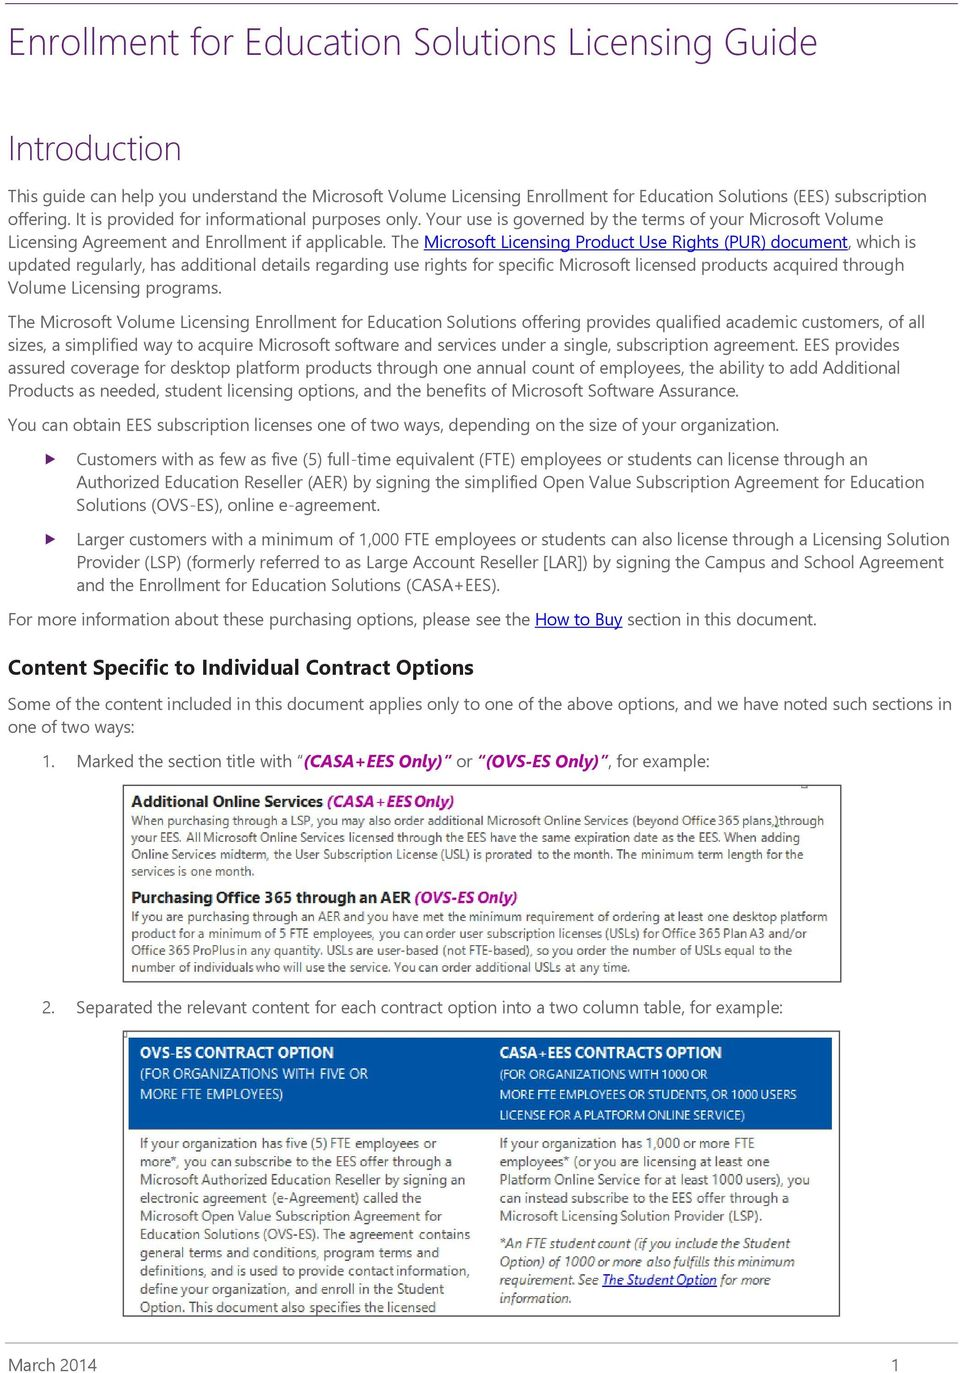 Enrollment for Education Solutions (EES) - PDF